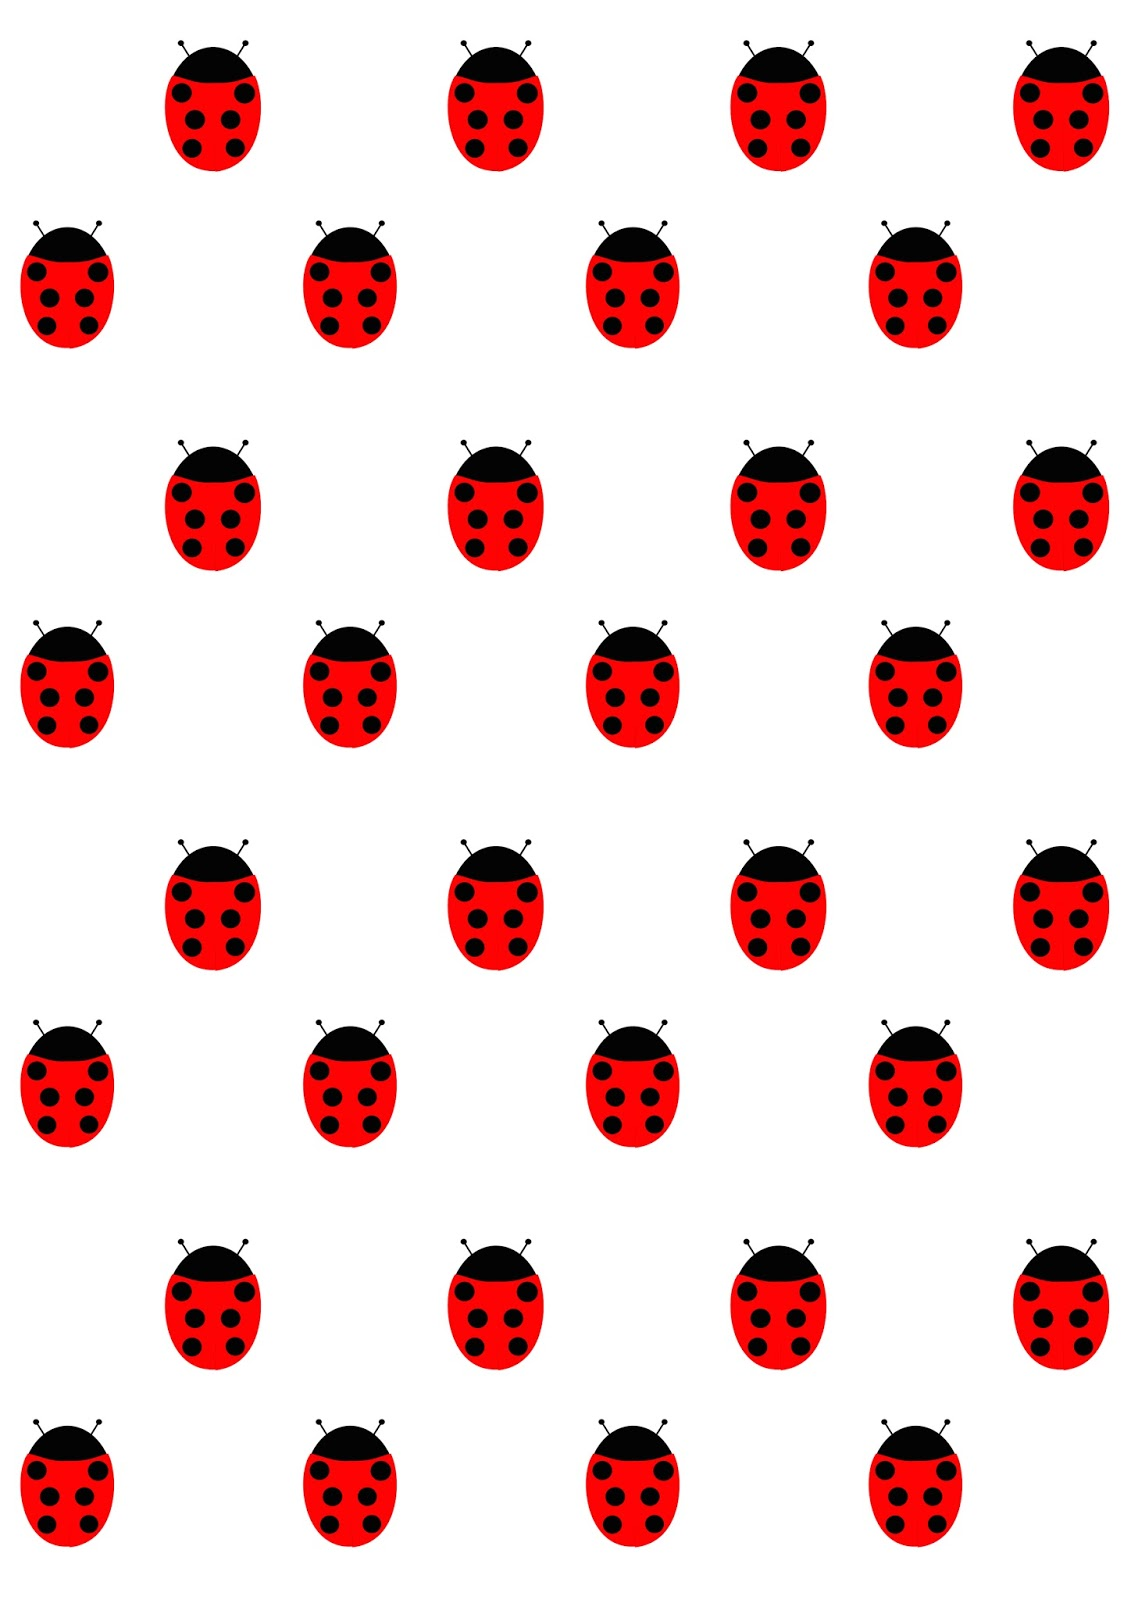 FREE-printable-ladybug-pattern-paper-cute-nursery-and-baby-shower-pattern-%5E%5E-wallpaper-wp3005880